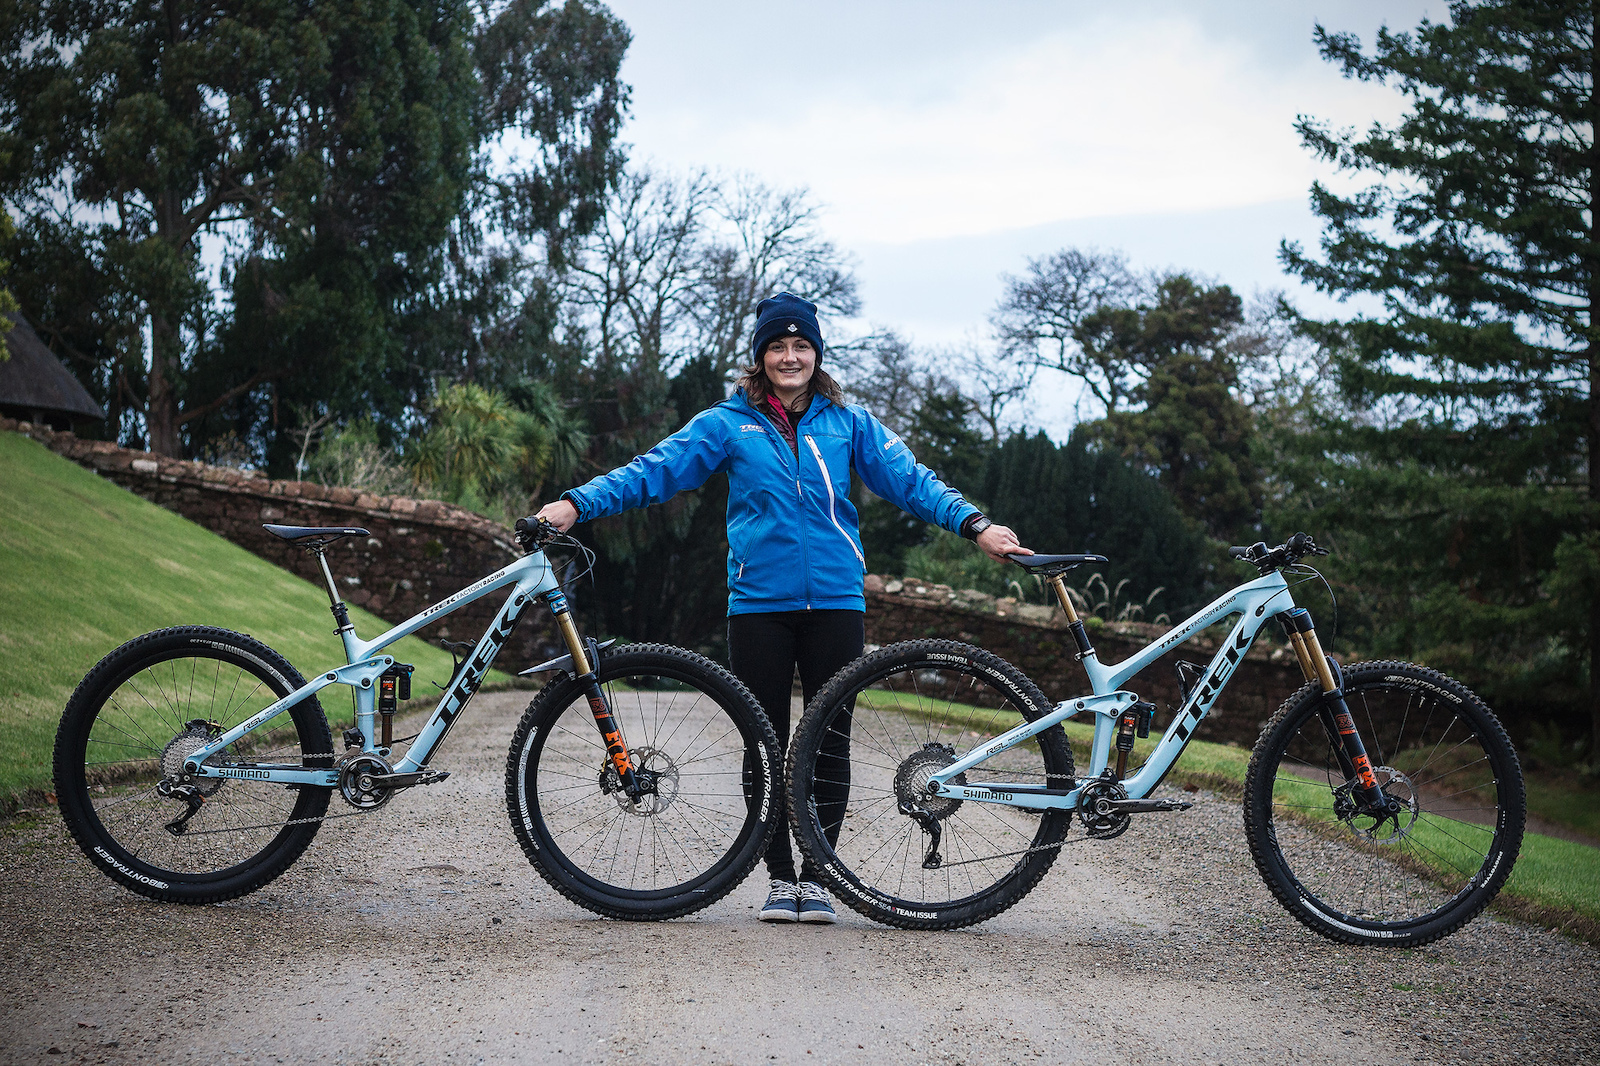 02243d70a42 Katy Winton's Factory Trek Slash 29 and Remedy 27.5 Race Bikes ...